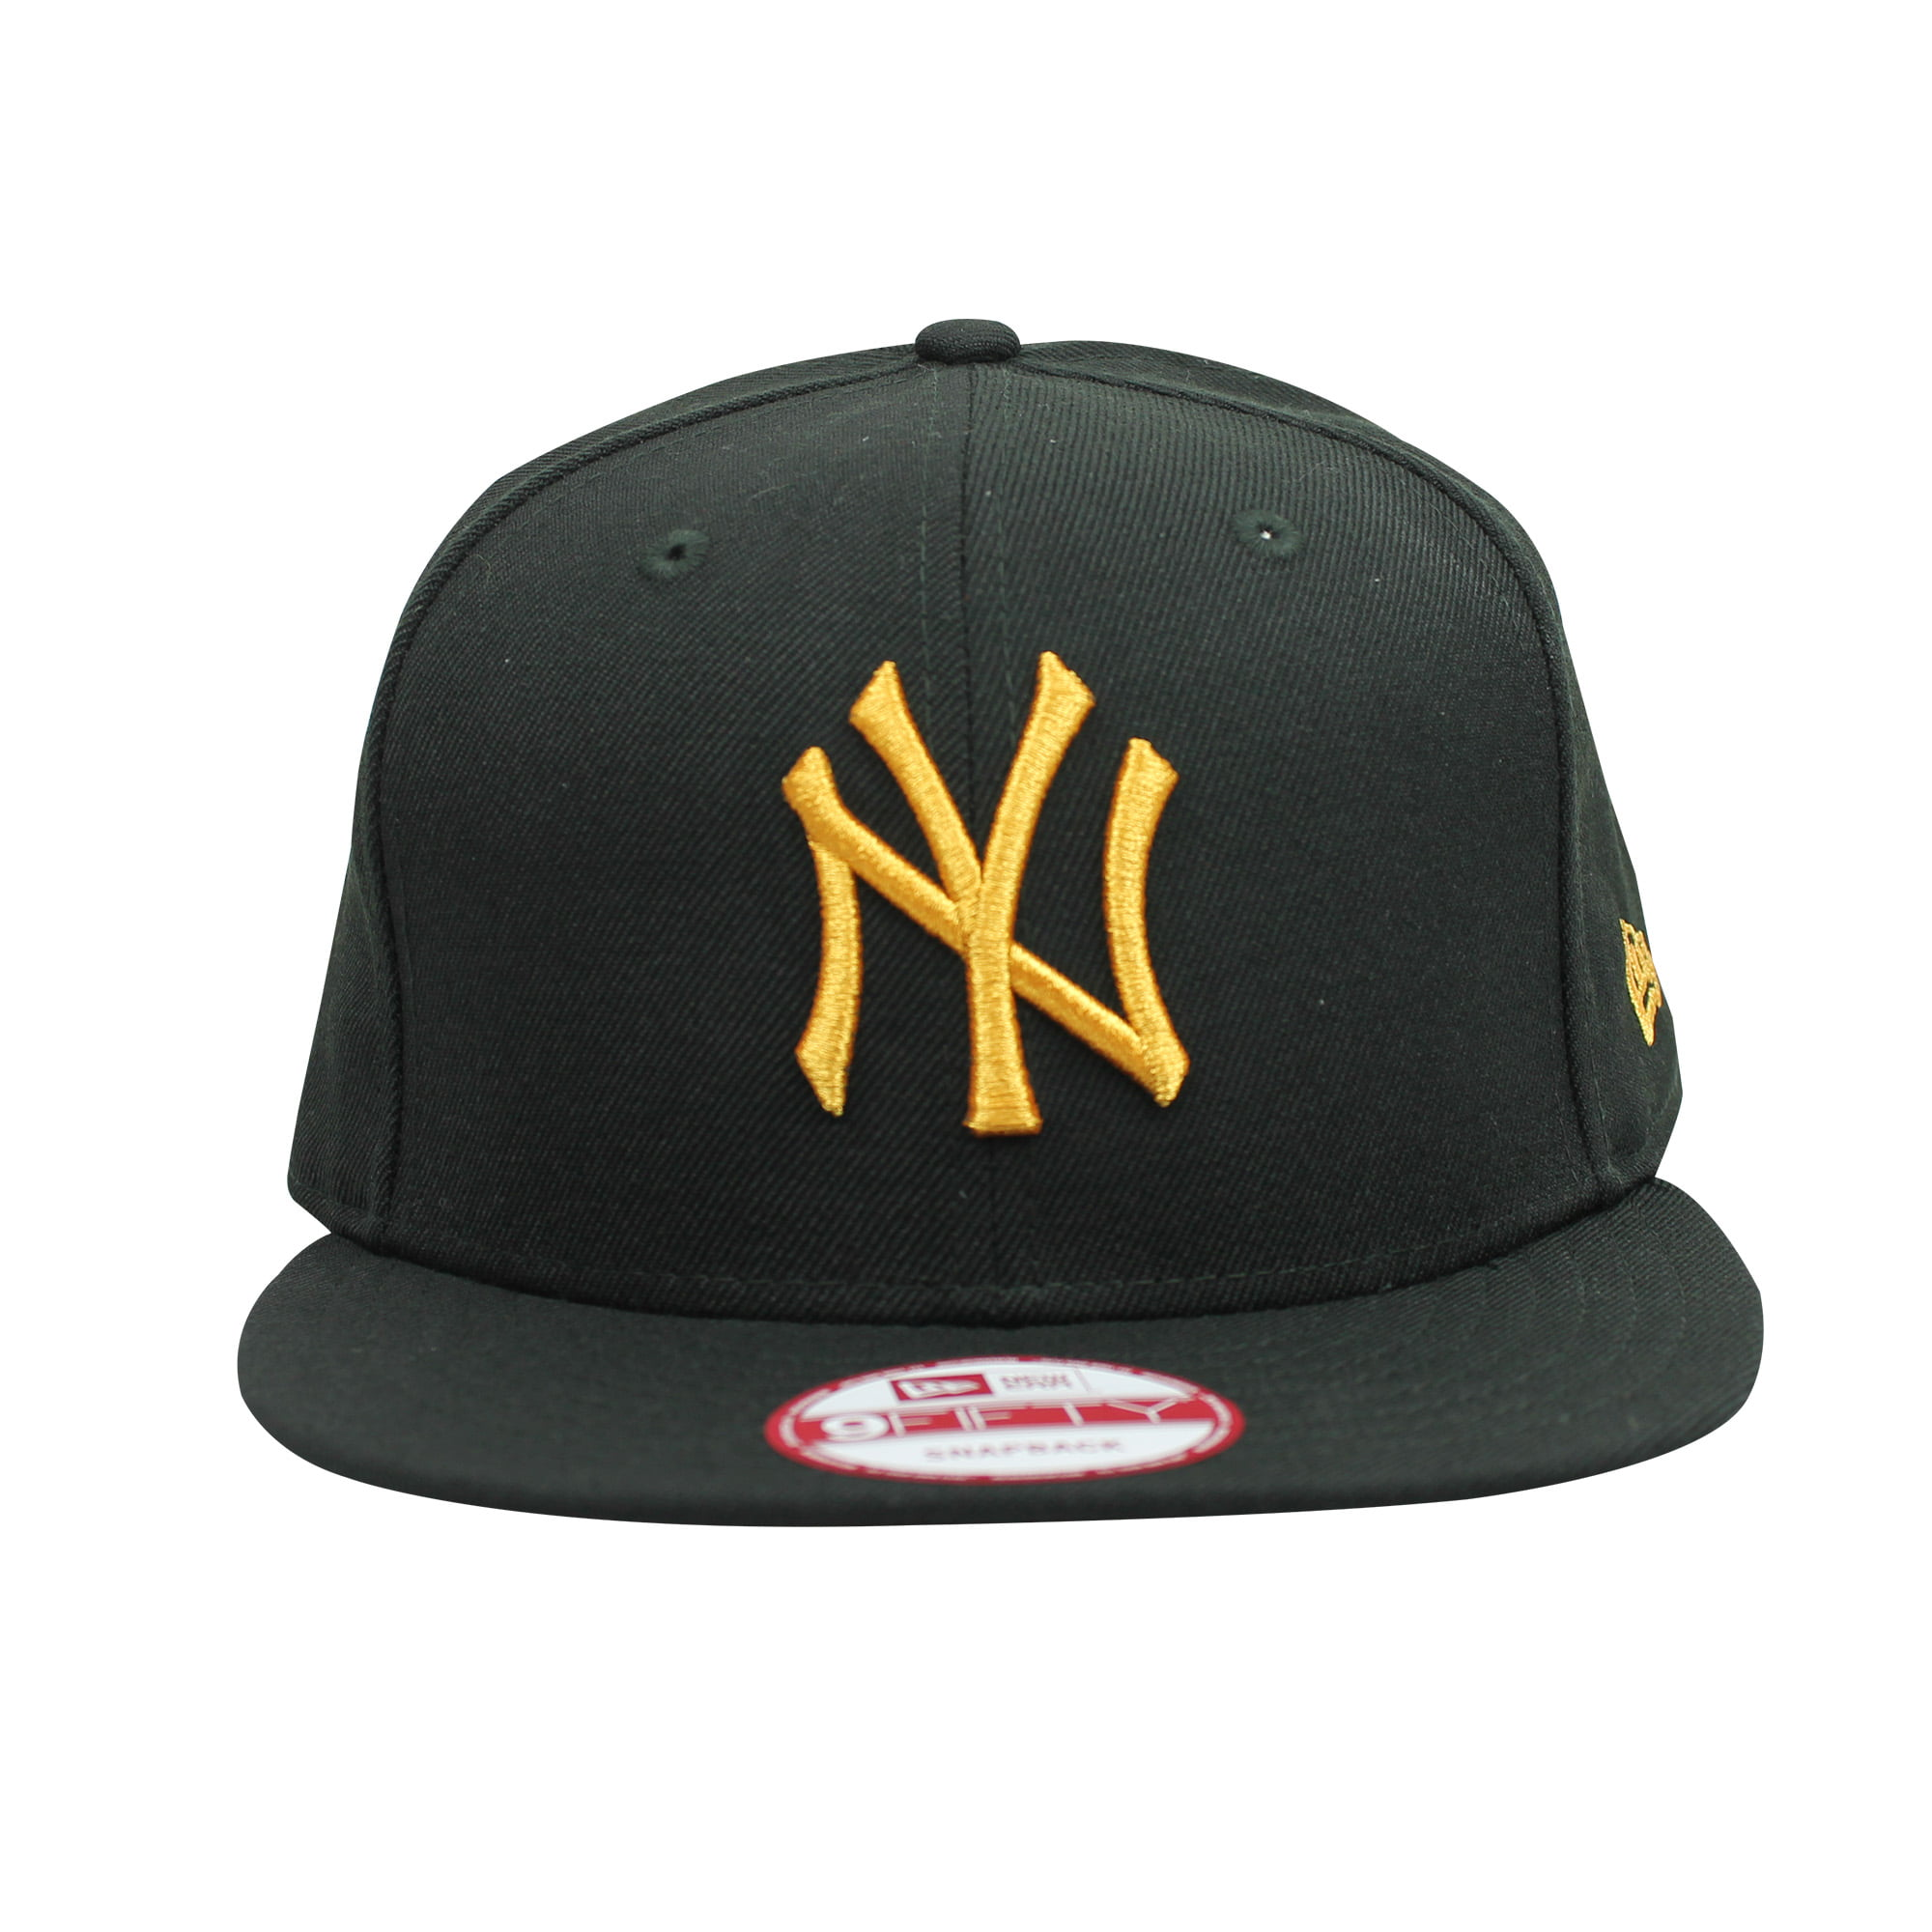 Bone new era 950 new york yankees black gold neyyan